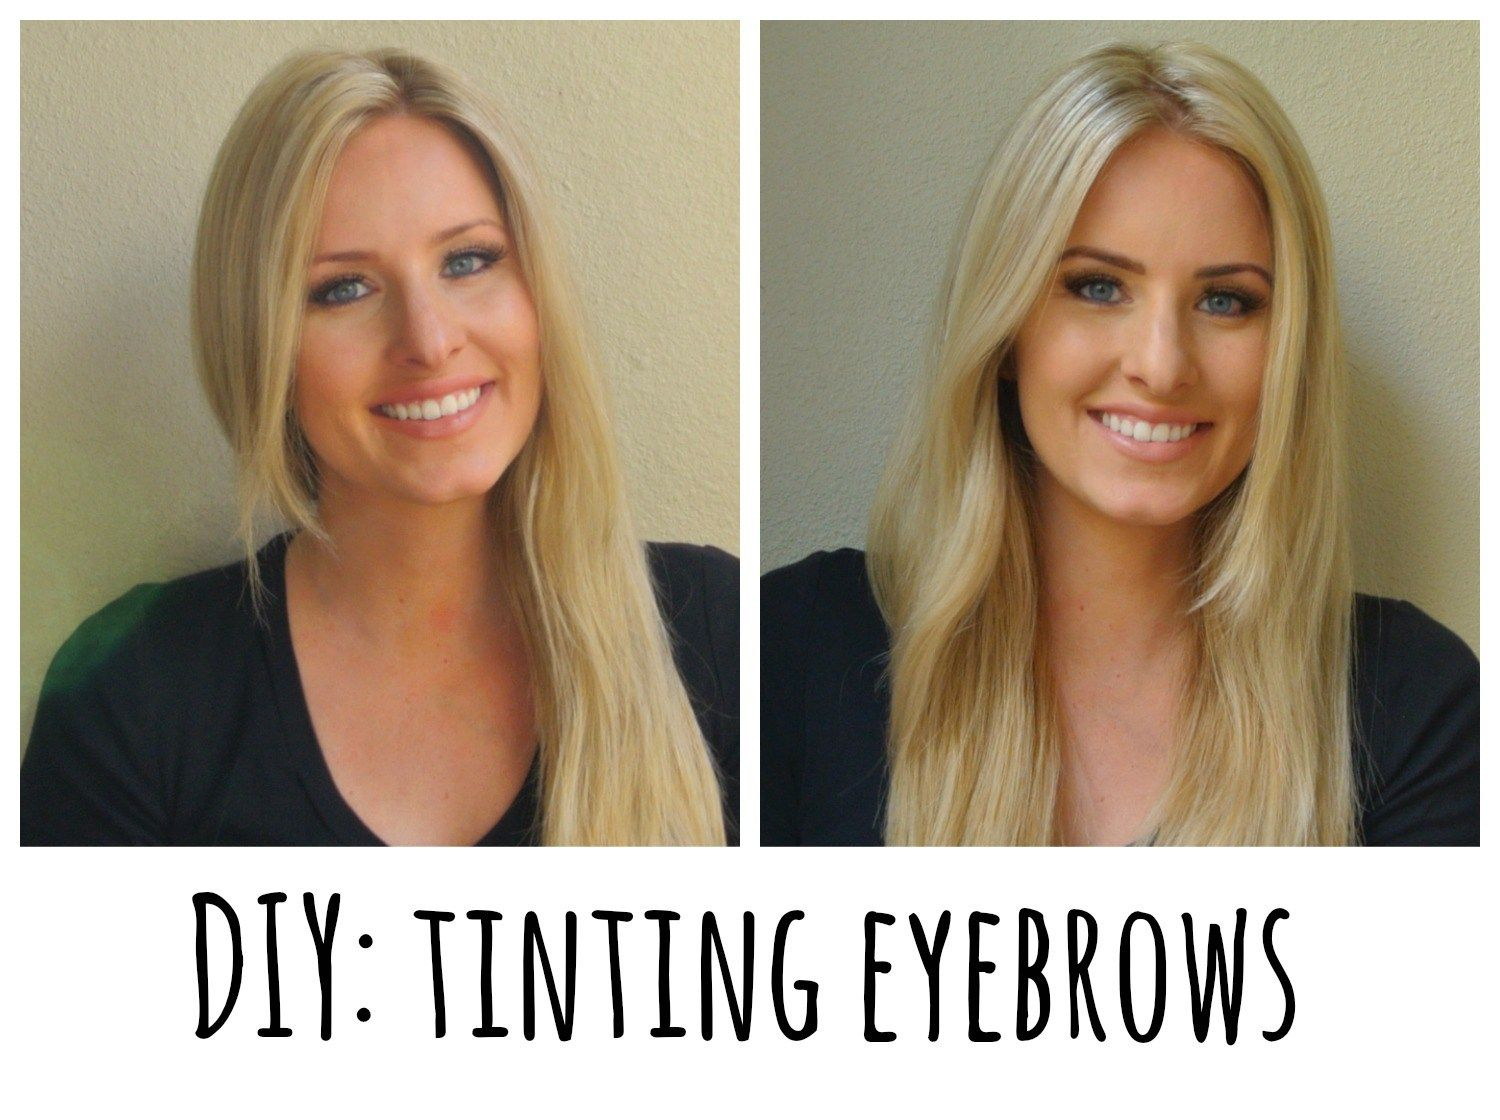 Diy How To Tint Eyebrows With Refectocil Beauty Kara Metta Dye Eyebrows How To Color Eyebrows Eyebrow Tinting Diy